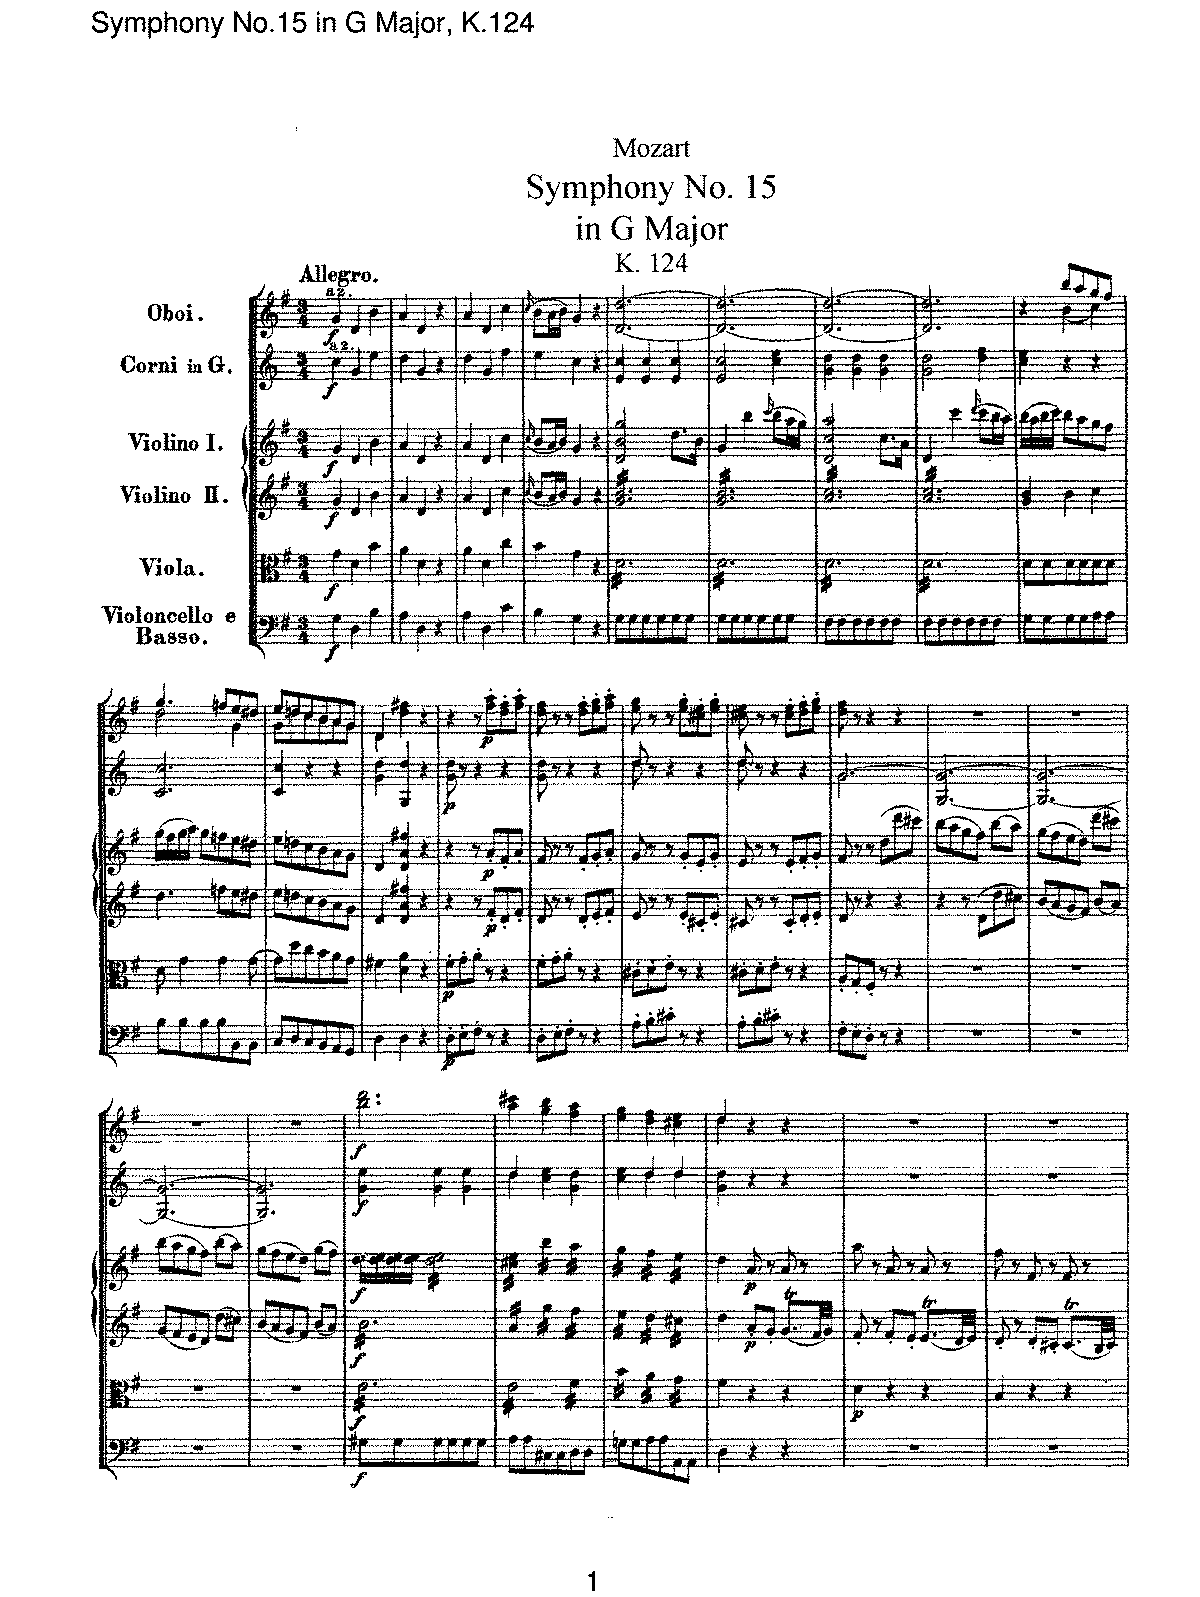 Mozart - Symphony No 15 in G Major, K124.pdf